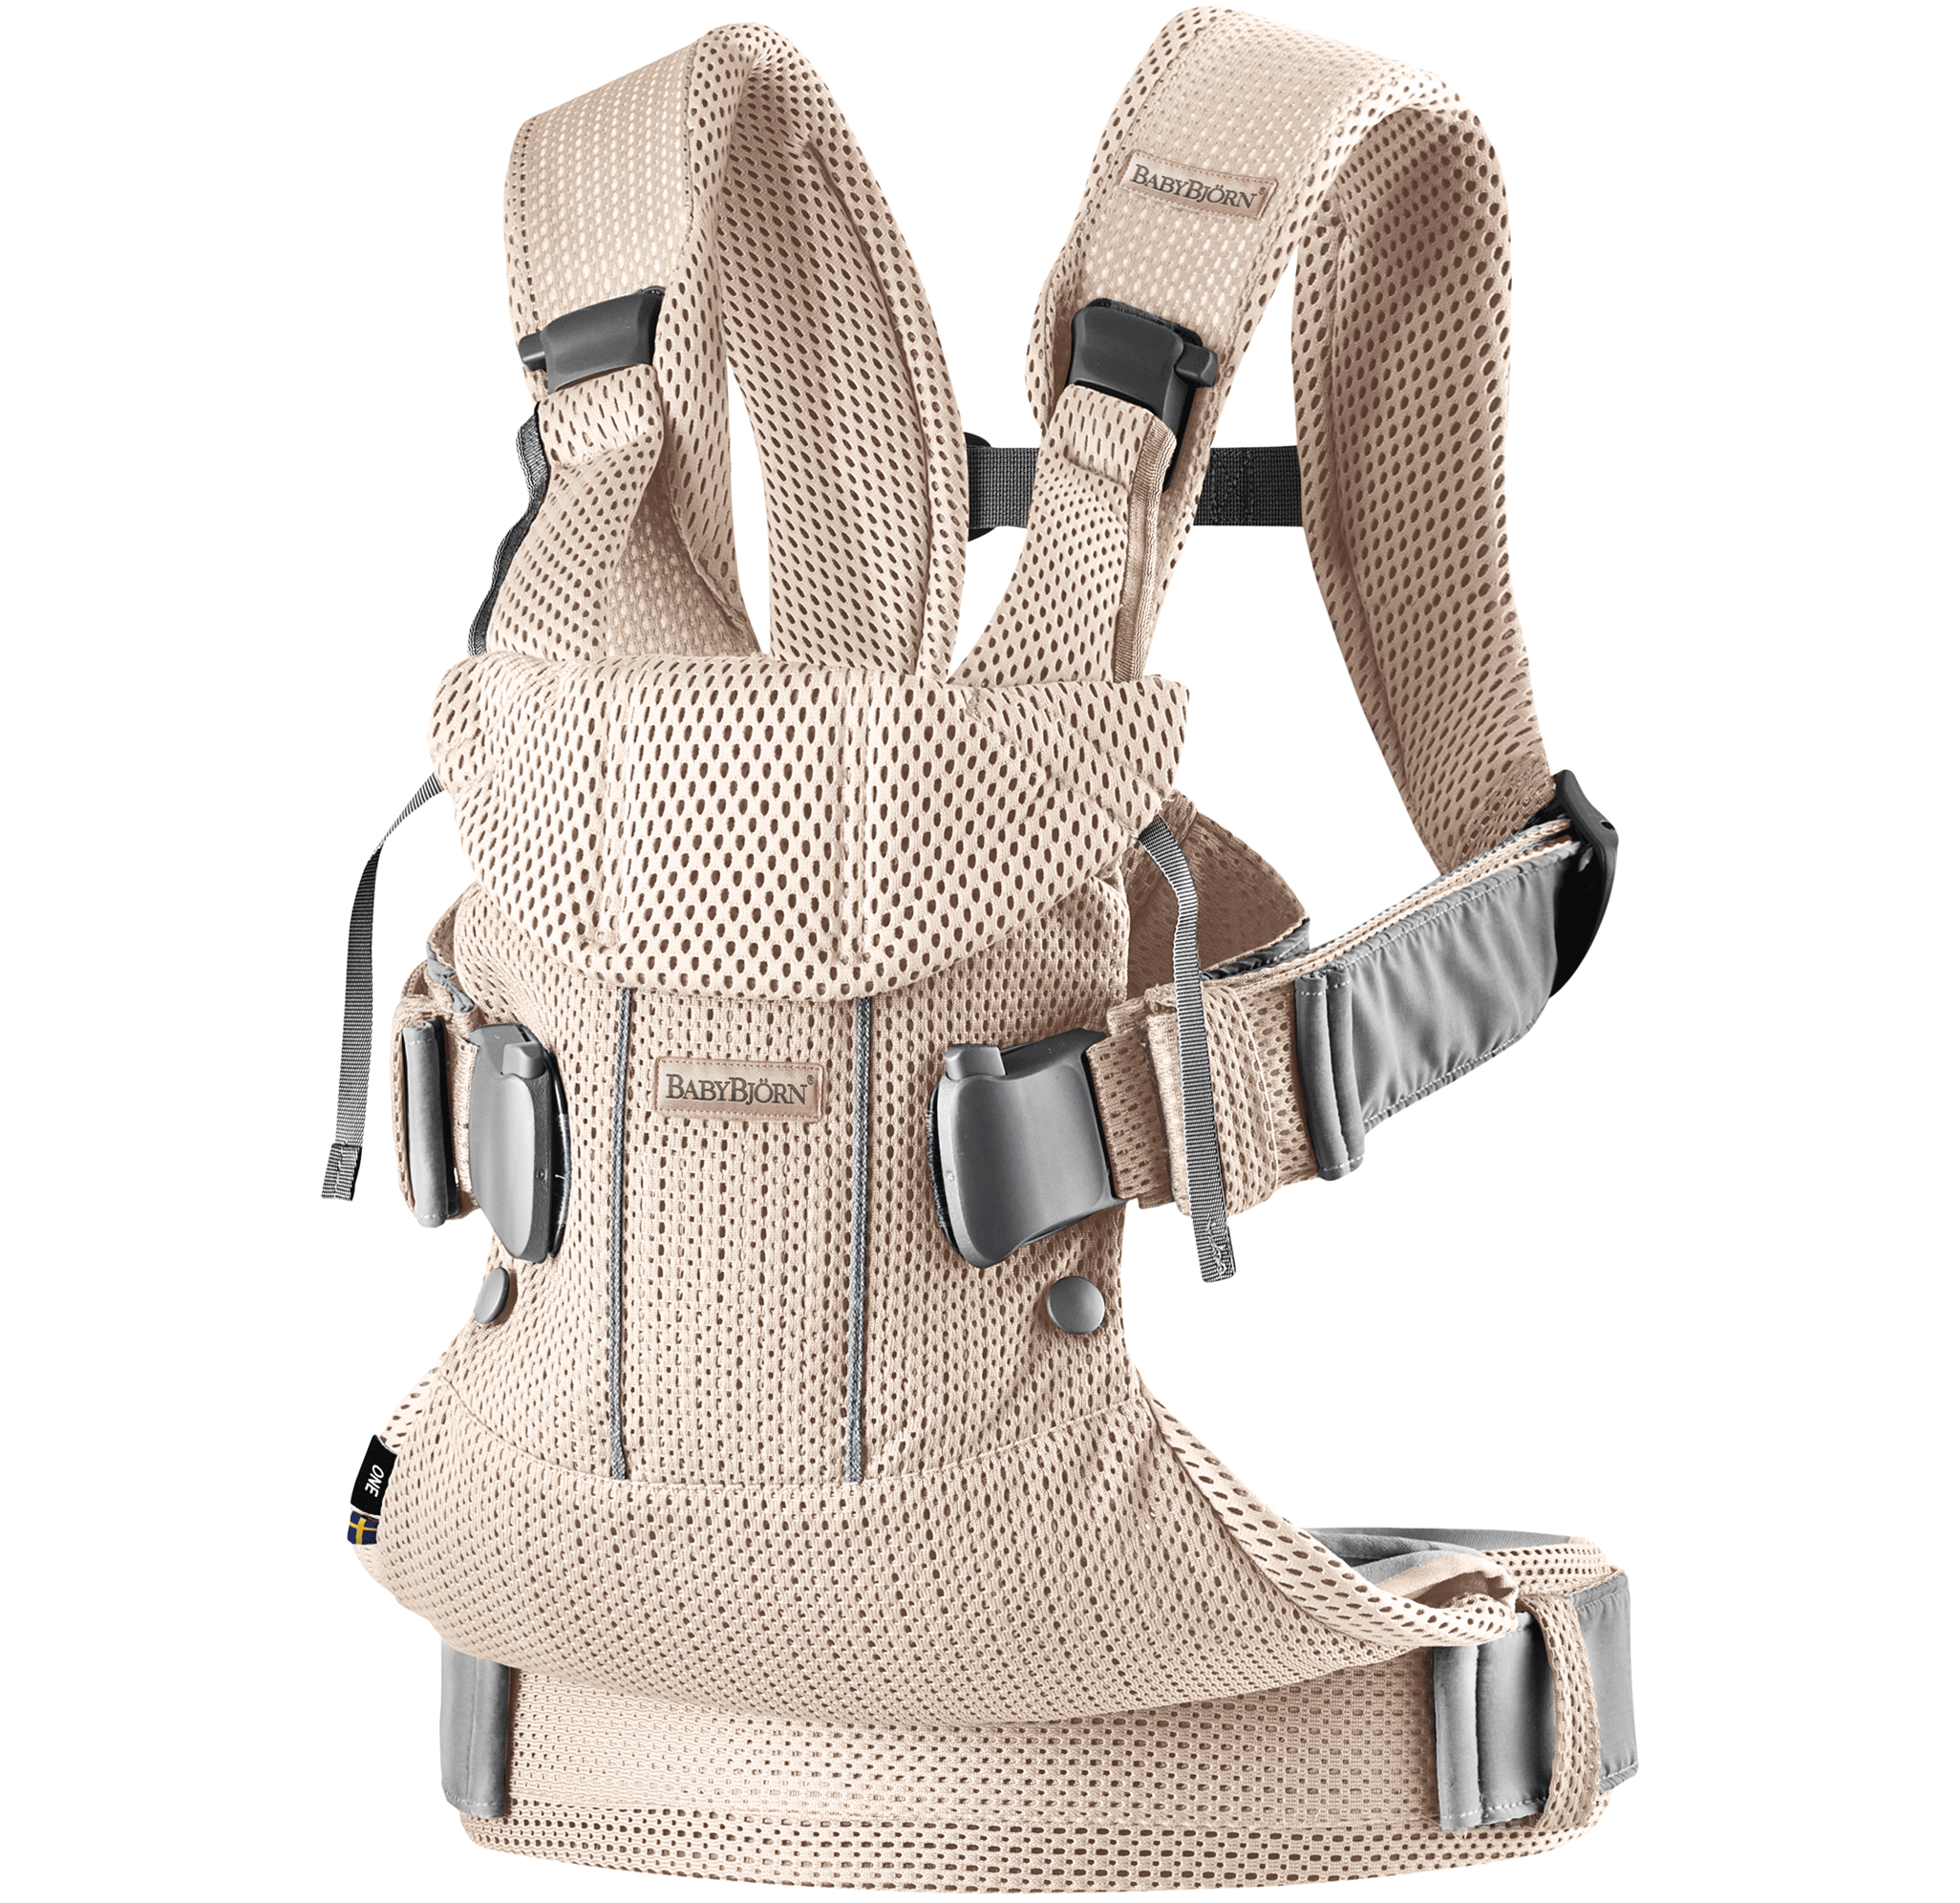 BABYBJÖRN Baby Carrier One Air in Pearly Pink 3D Mesh, Airy and cool mesh that dries rapidly.